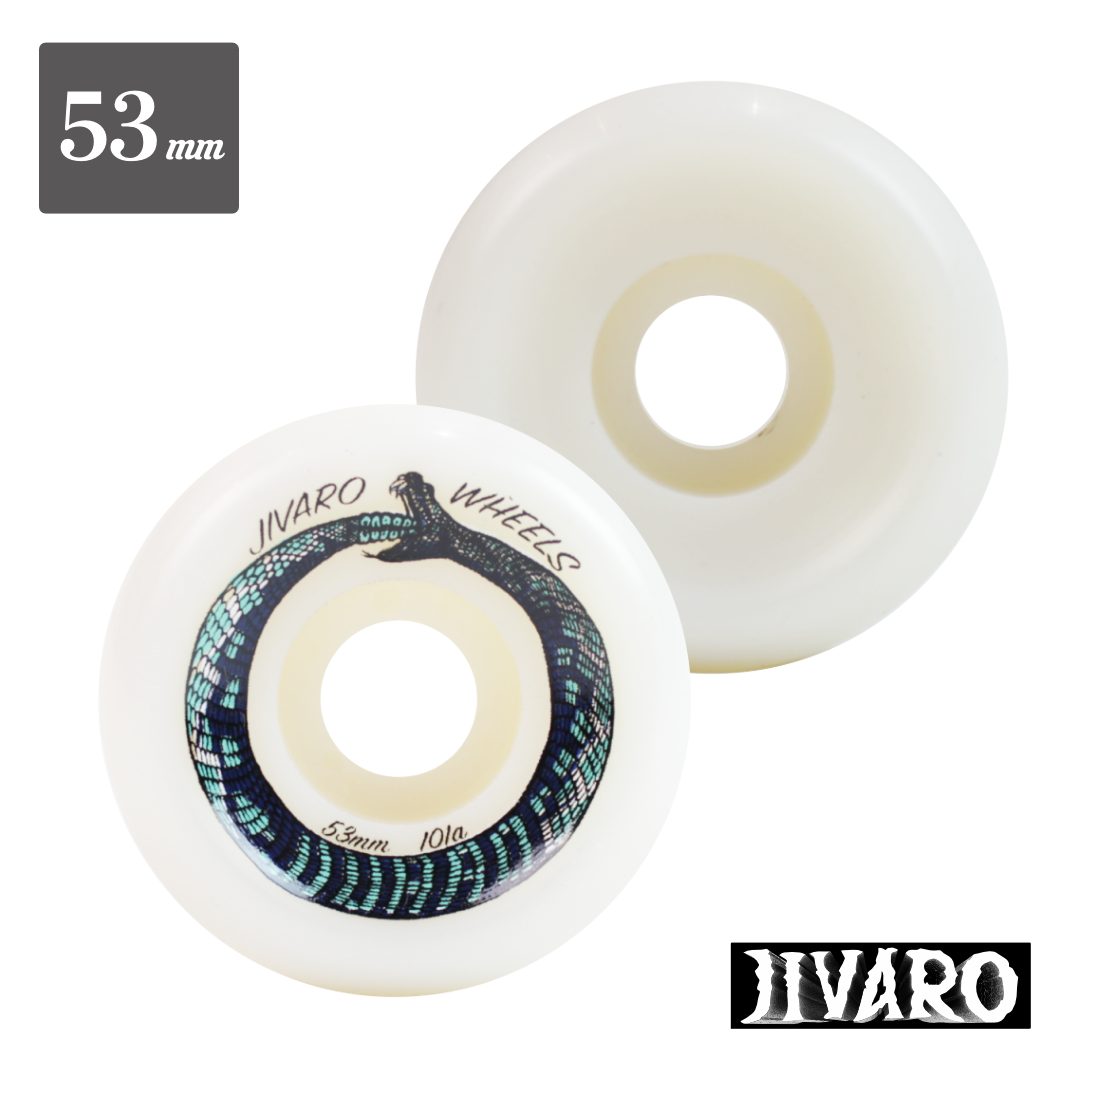 【Jivaro Wheels】Biters Side Cut - 53mm